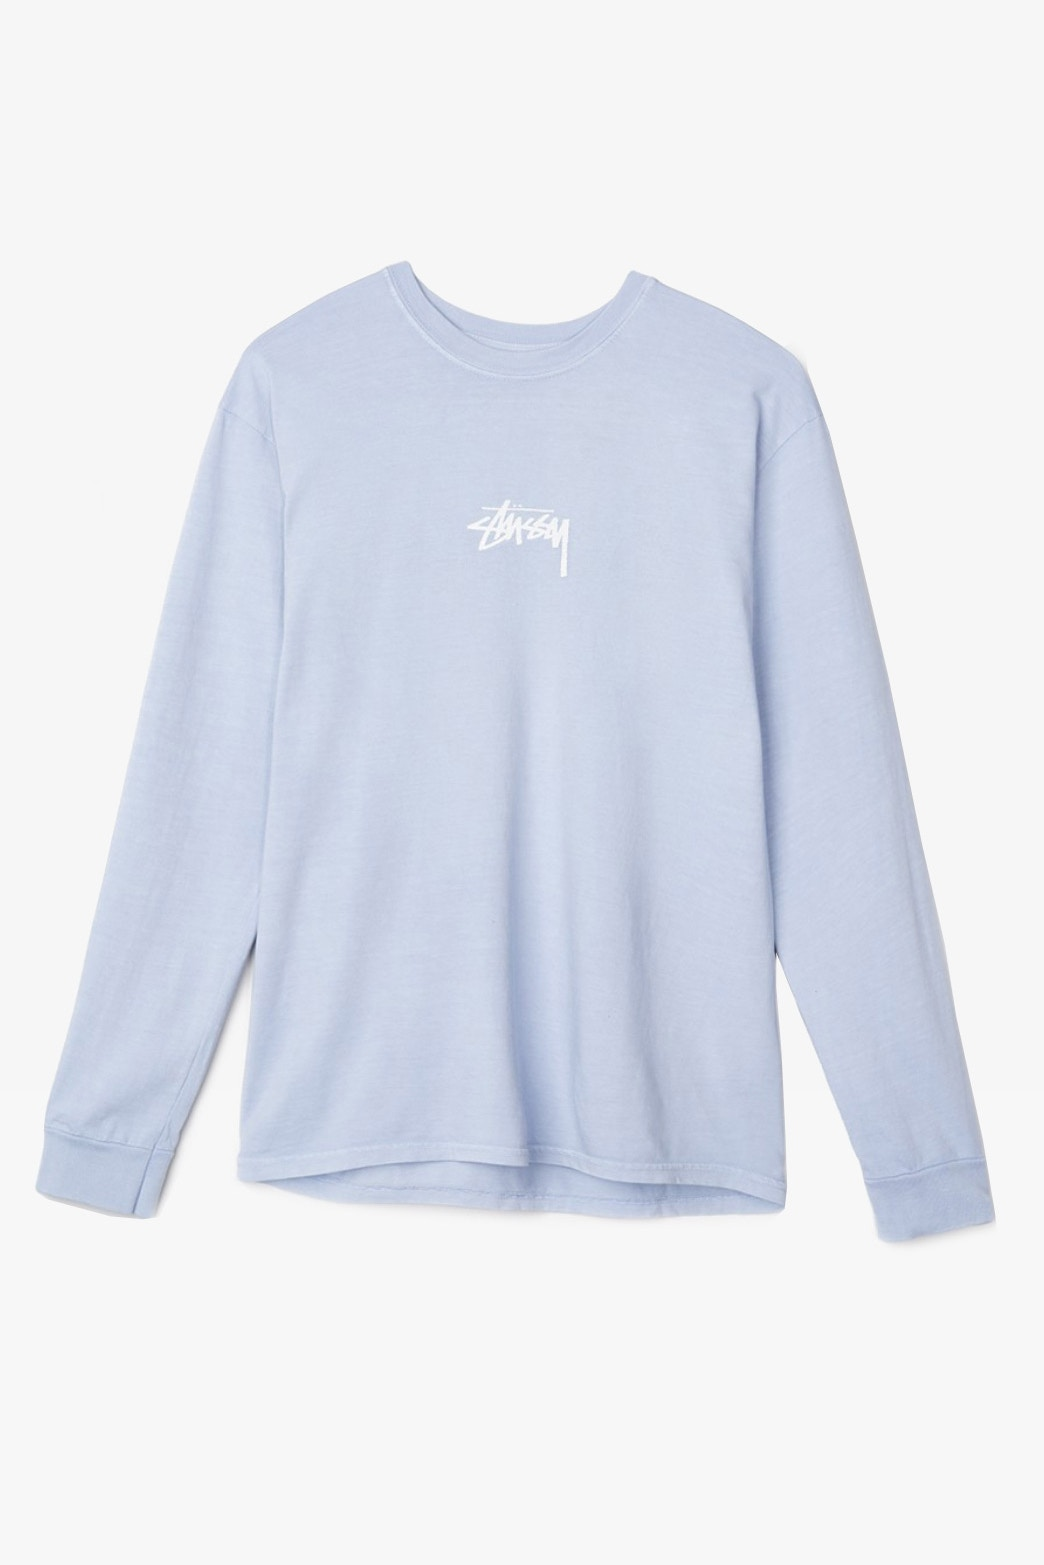 http---bae.hypebeast.com-files-2017-07-stussy-2017-july-releases-11